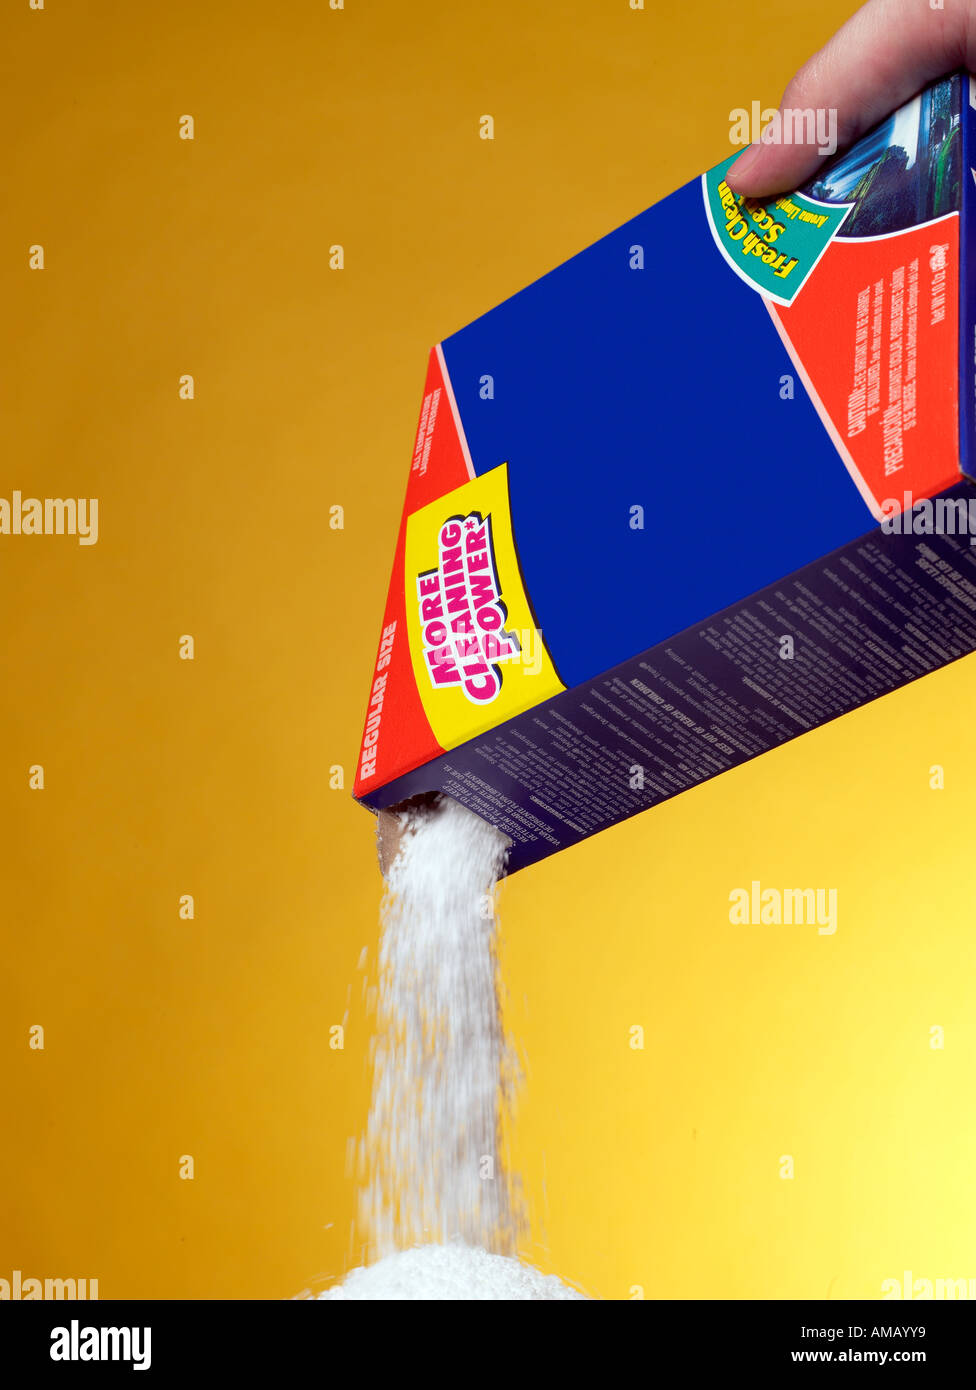 Pouring Detergent vertical - Stock Image